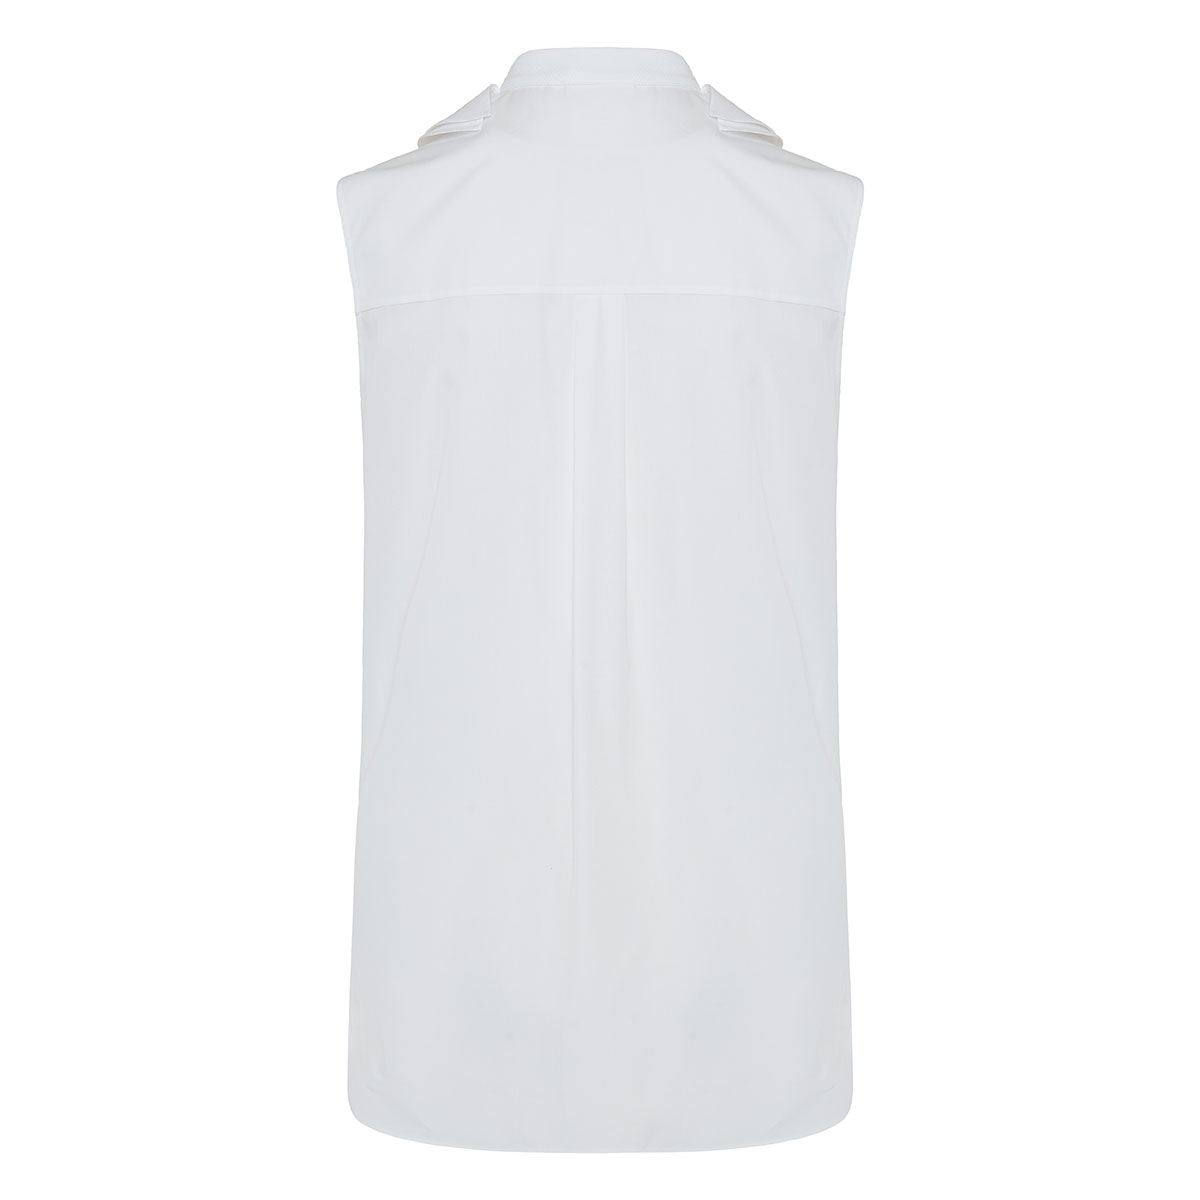 Ruffled-bib sleeveless poplin shirt